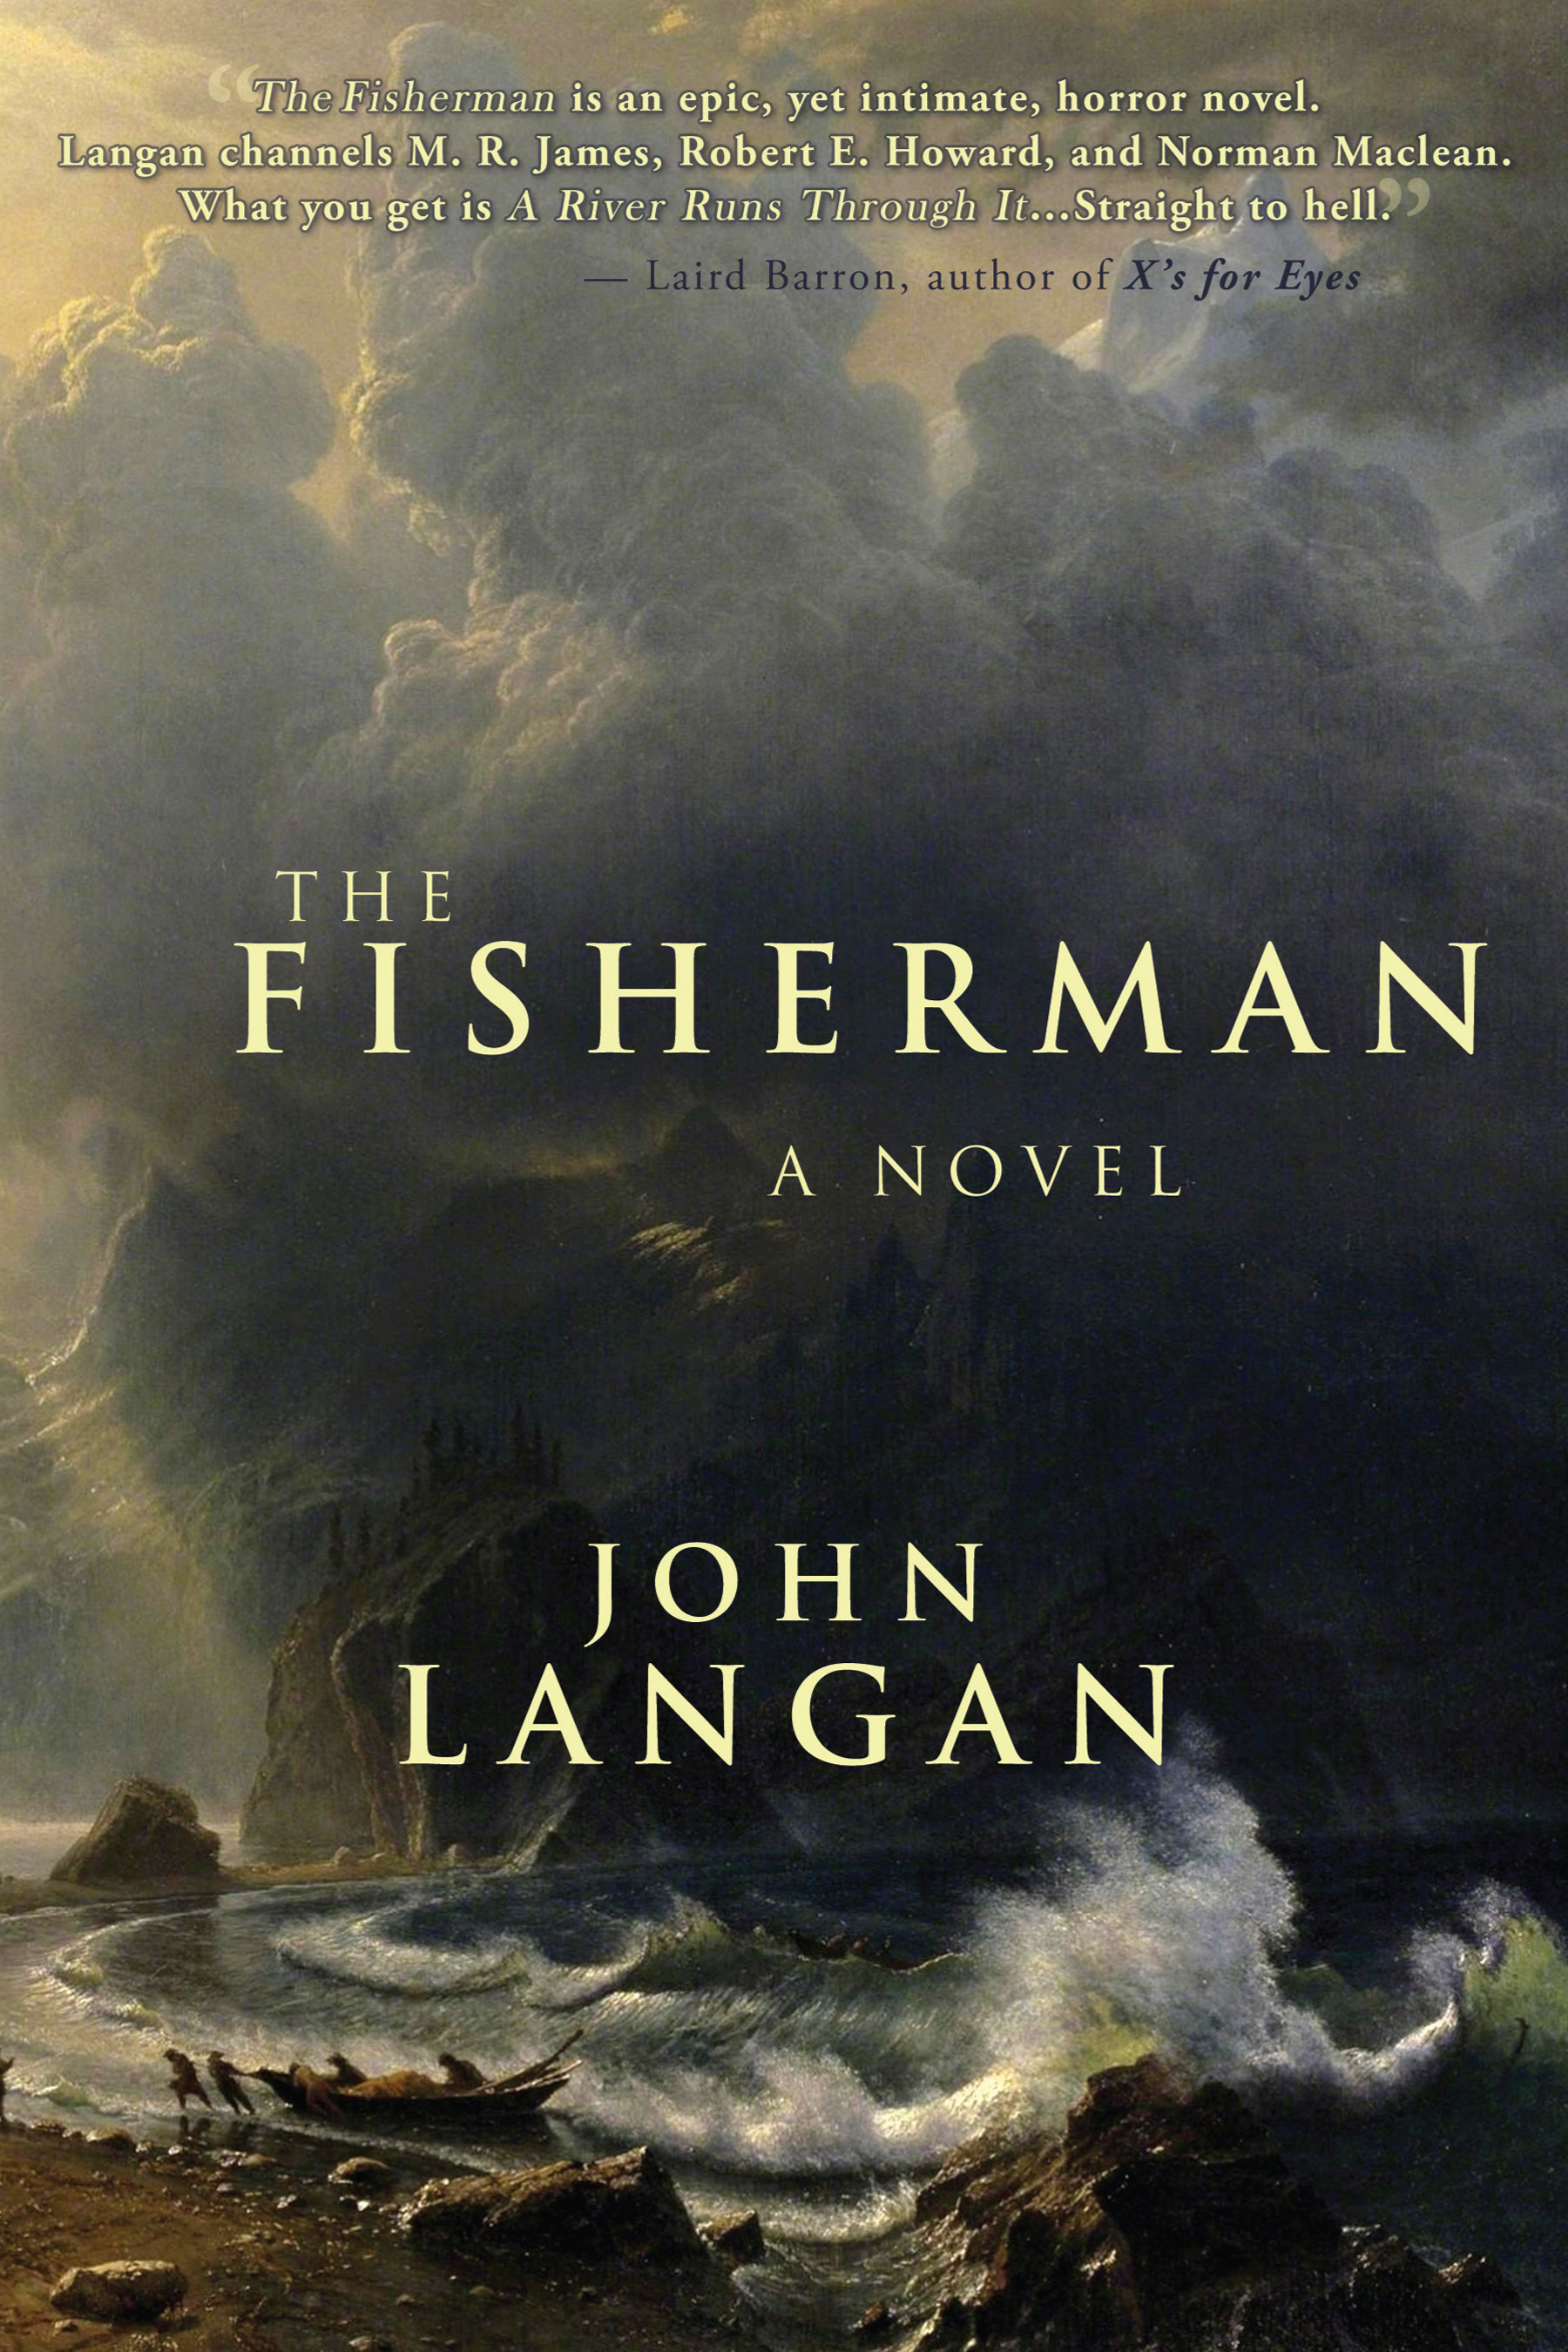 Image result for The Fisherman by John Langan